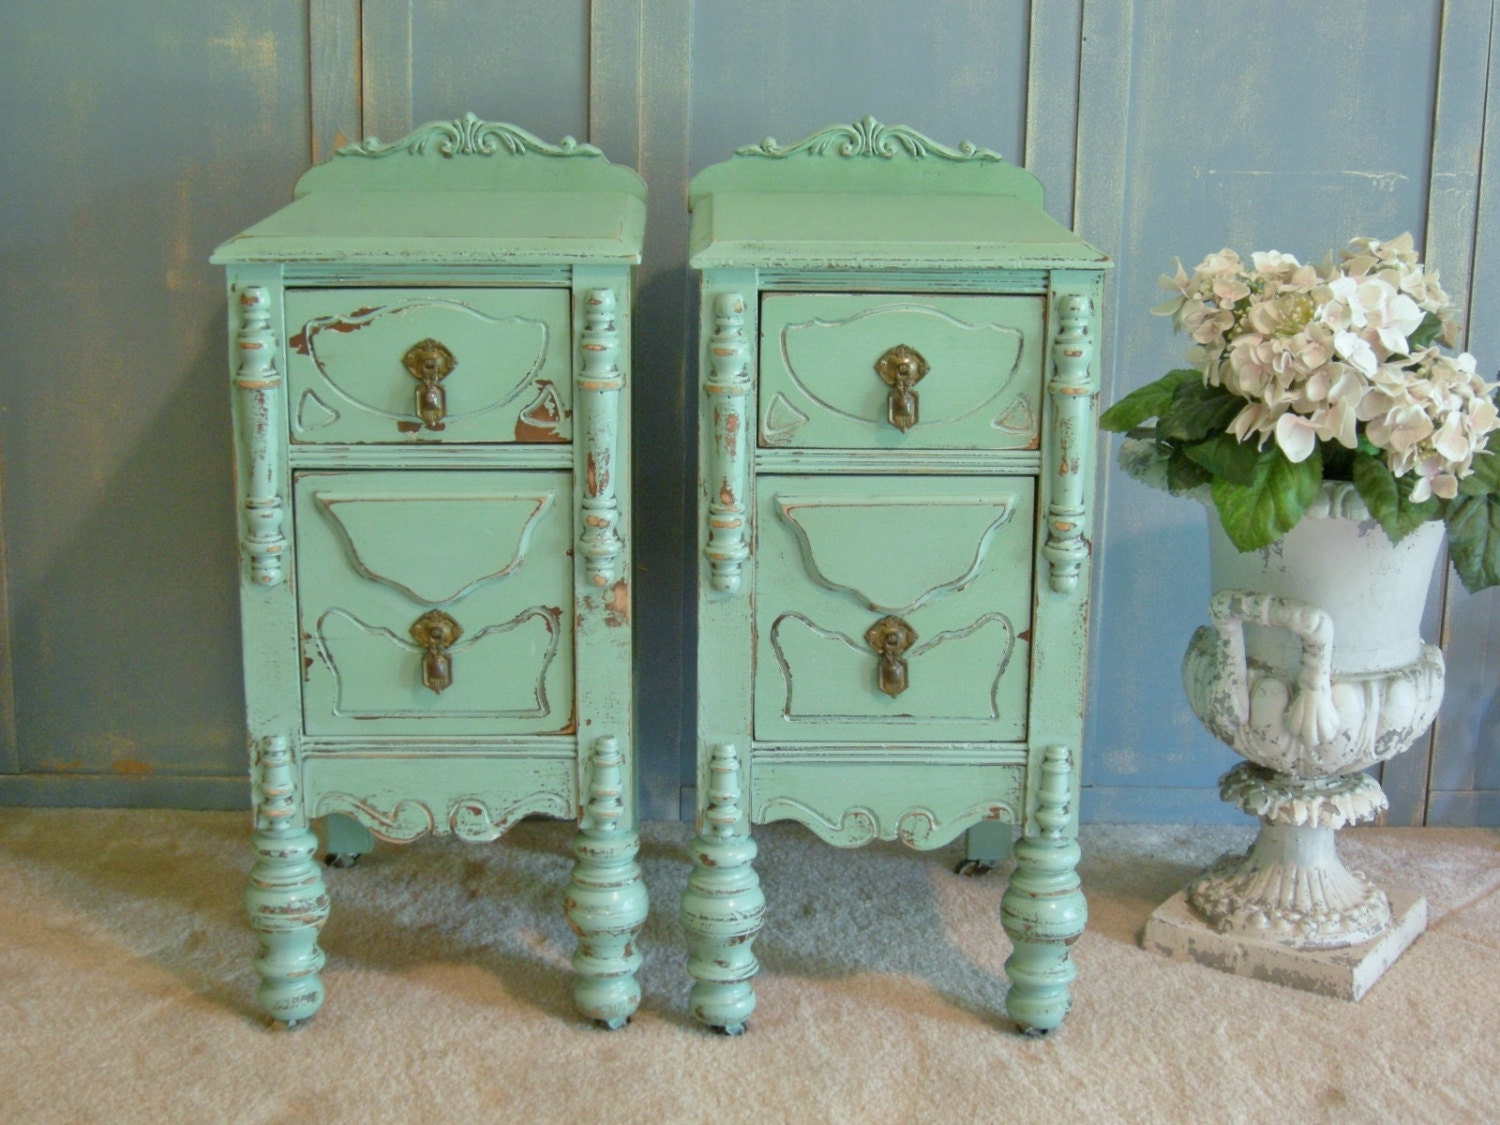 Antique Night Stands 2 Nightstands Restored Pair Of Antique Nightstands Perfect For